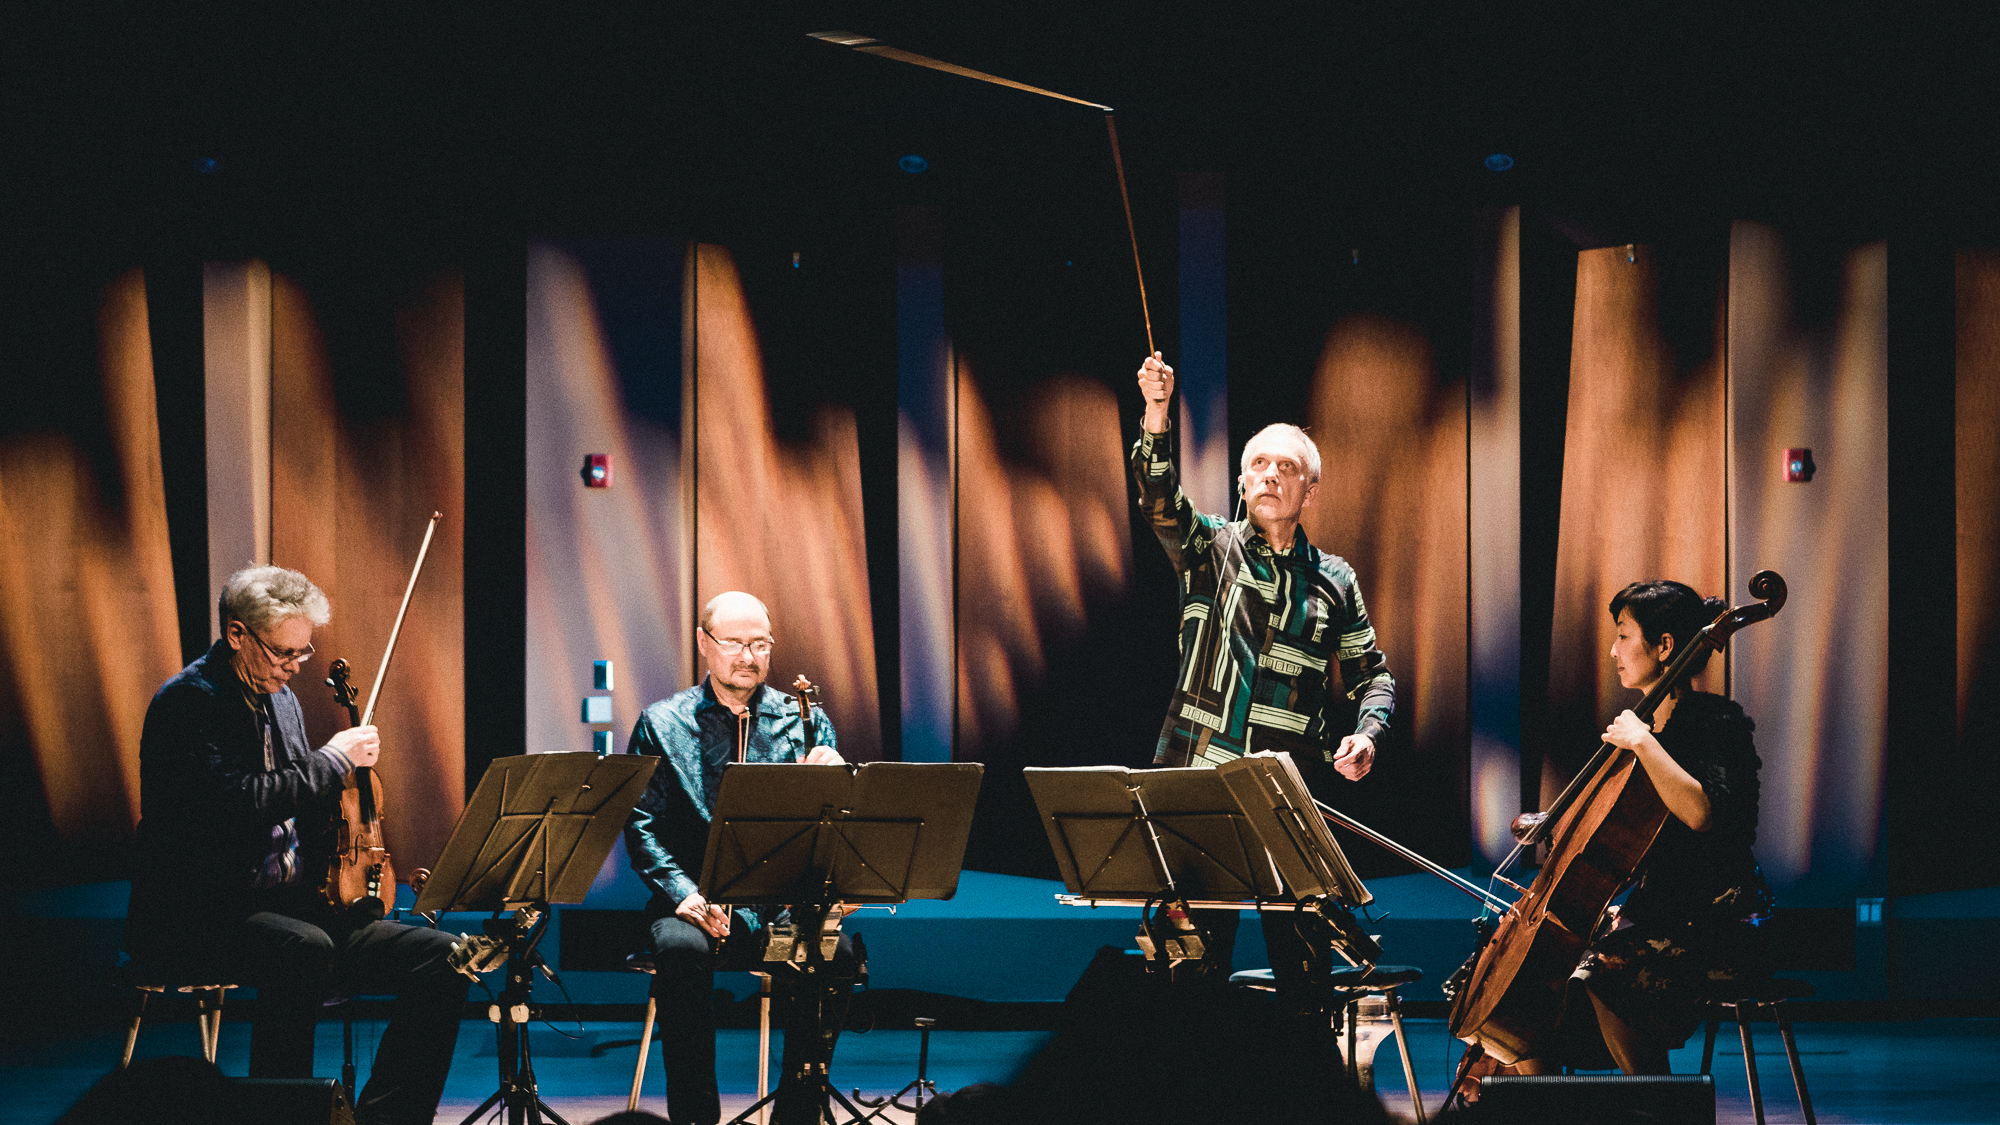 Kronos Quartet performs 12/12 from the album Nuevo (2002) in oceanside, ca 3.10.18   listen to the song here